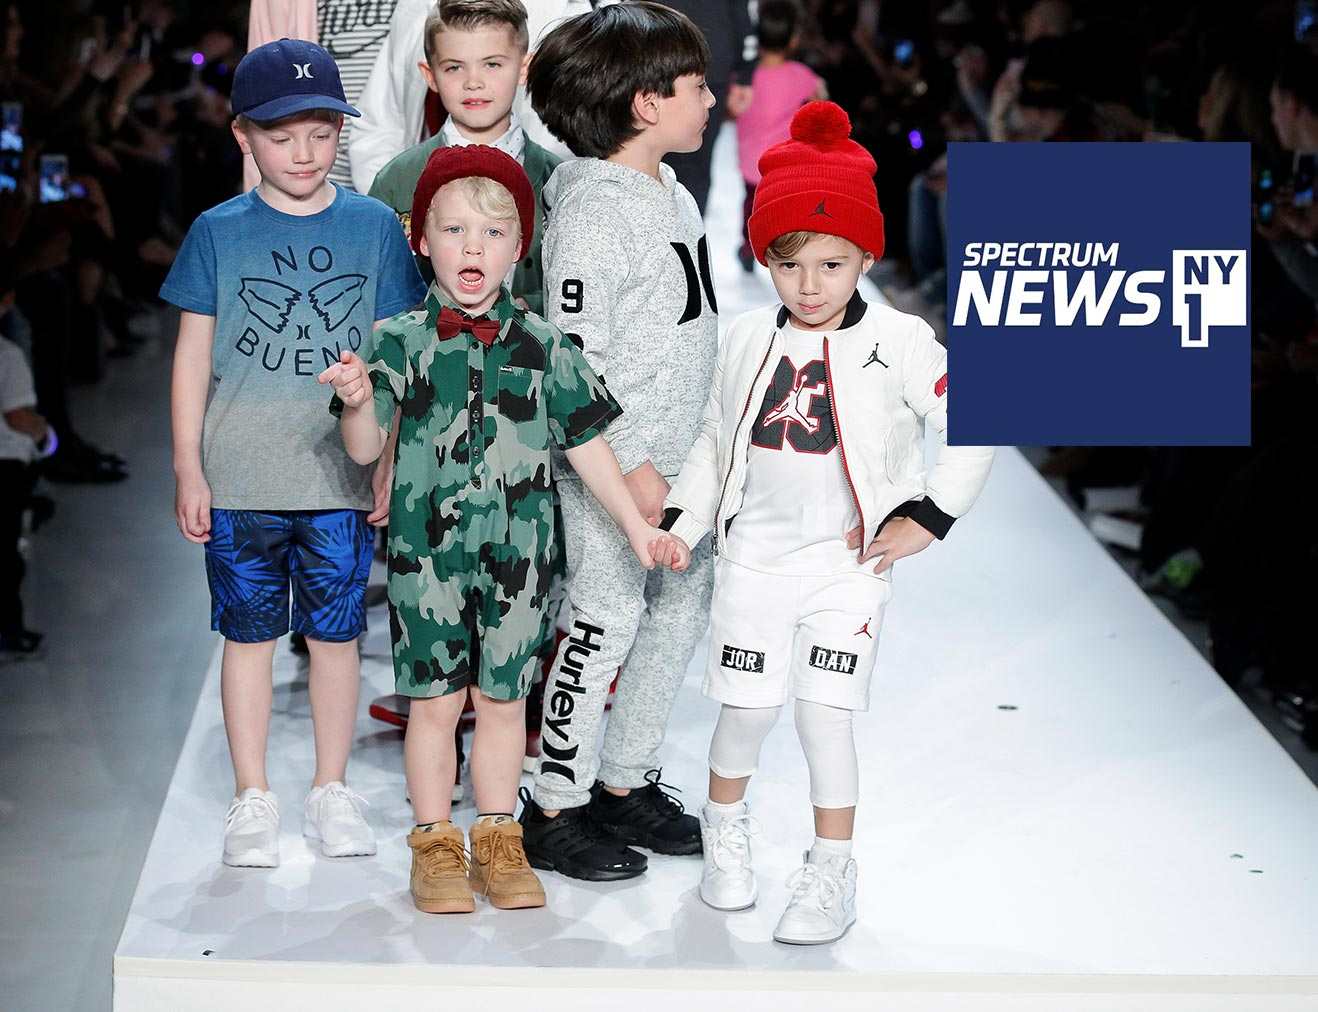 Rookie USA Fashion Show Puts Celebrity's Kids on the Runway